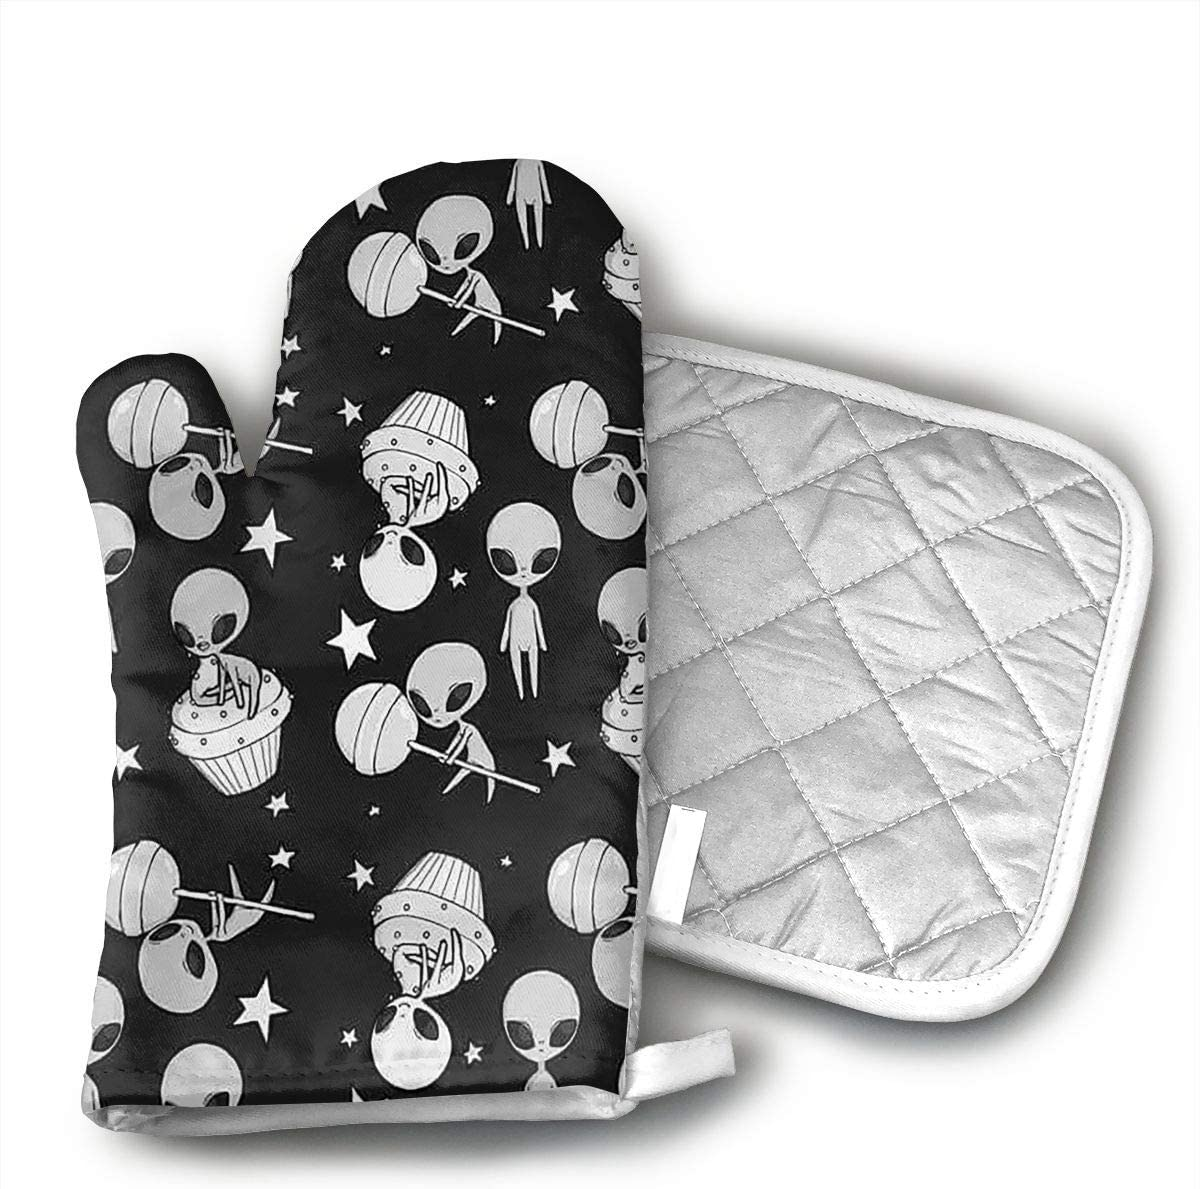 MEILVWEN Universe Alien Oven Mitt and Pot Holder, Heat Resistant for Cooking and Baking Kitchen Gift